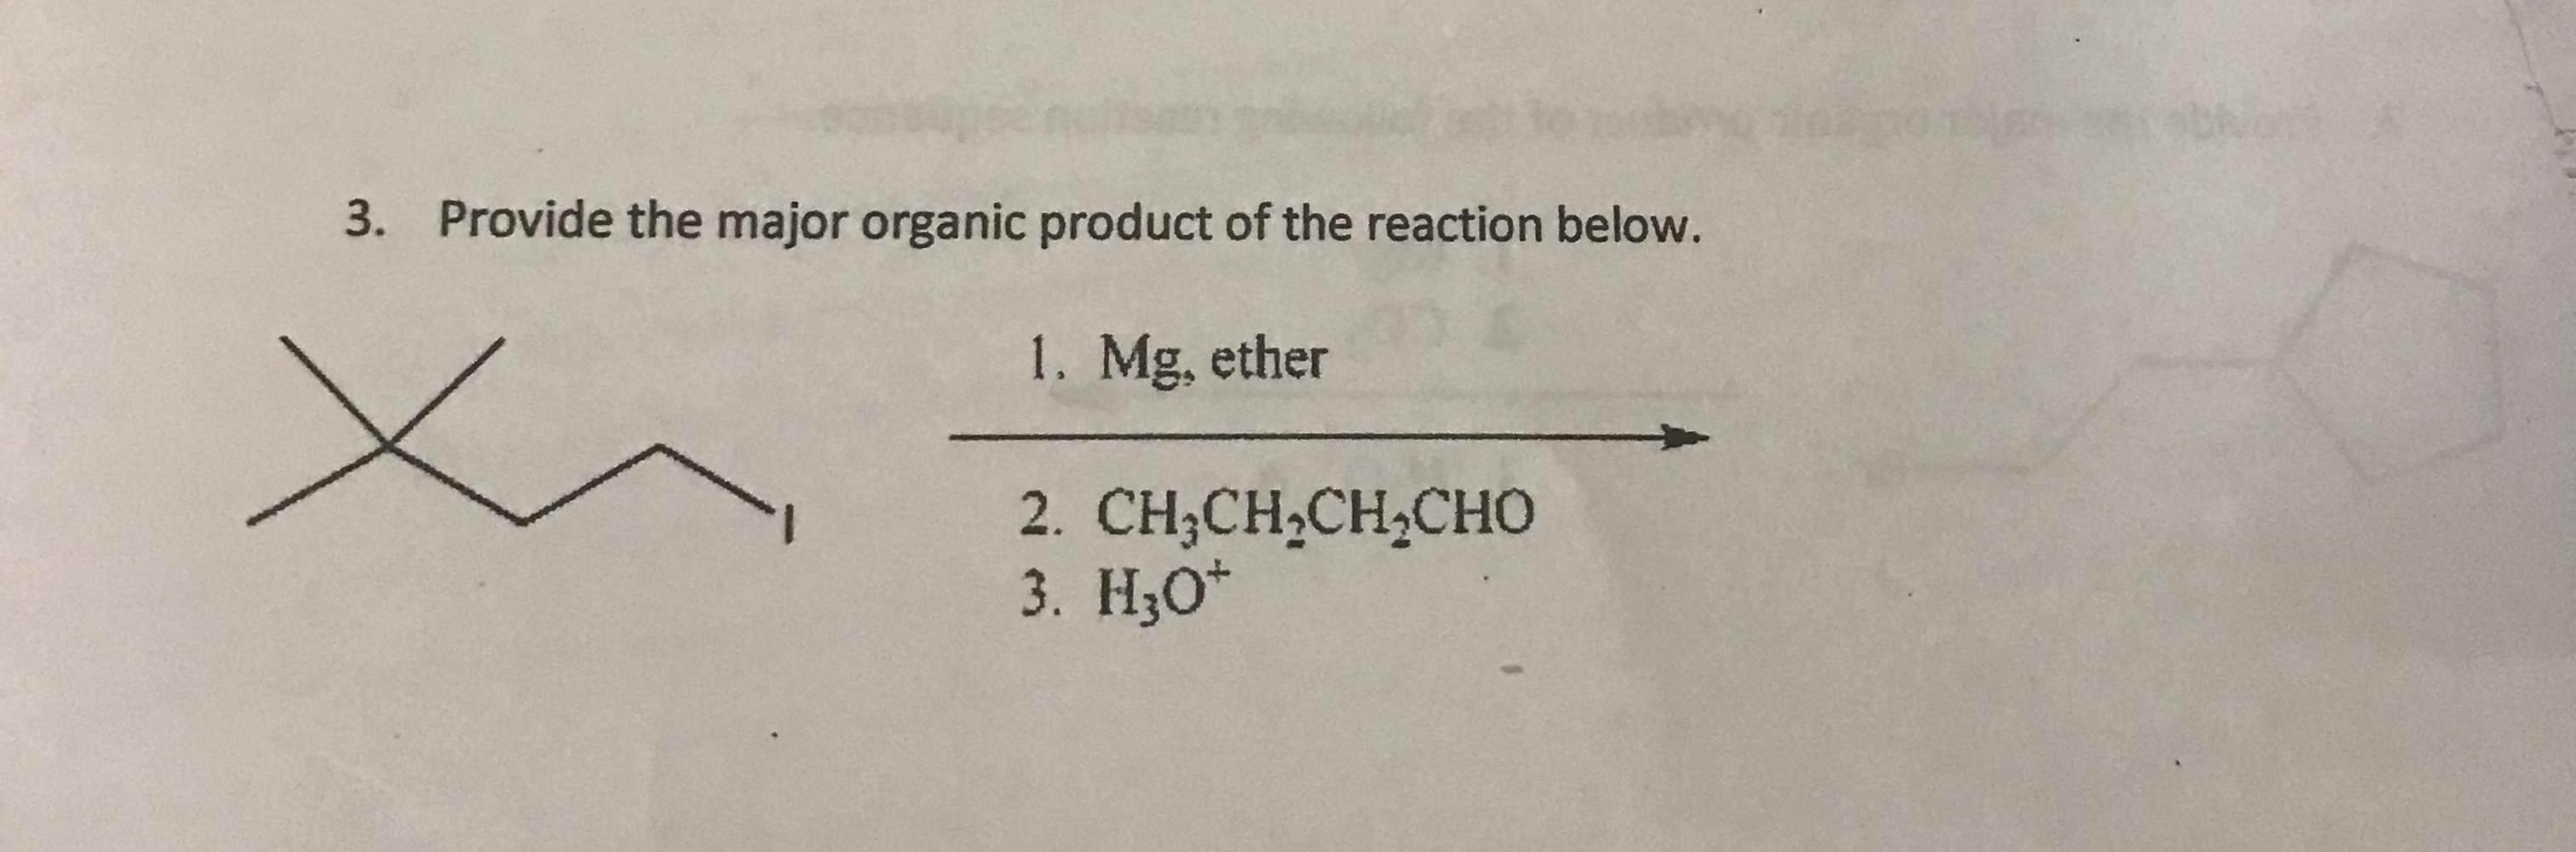 ba Provide the major organic product of the reaction below. 3. 1. Mg, ether 2. CH,CH,CH,CHо 3. Н,о*